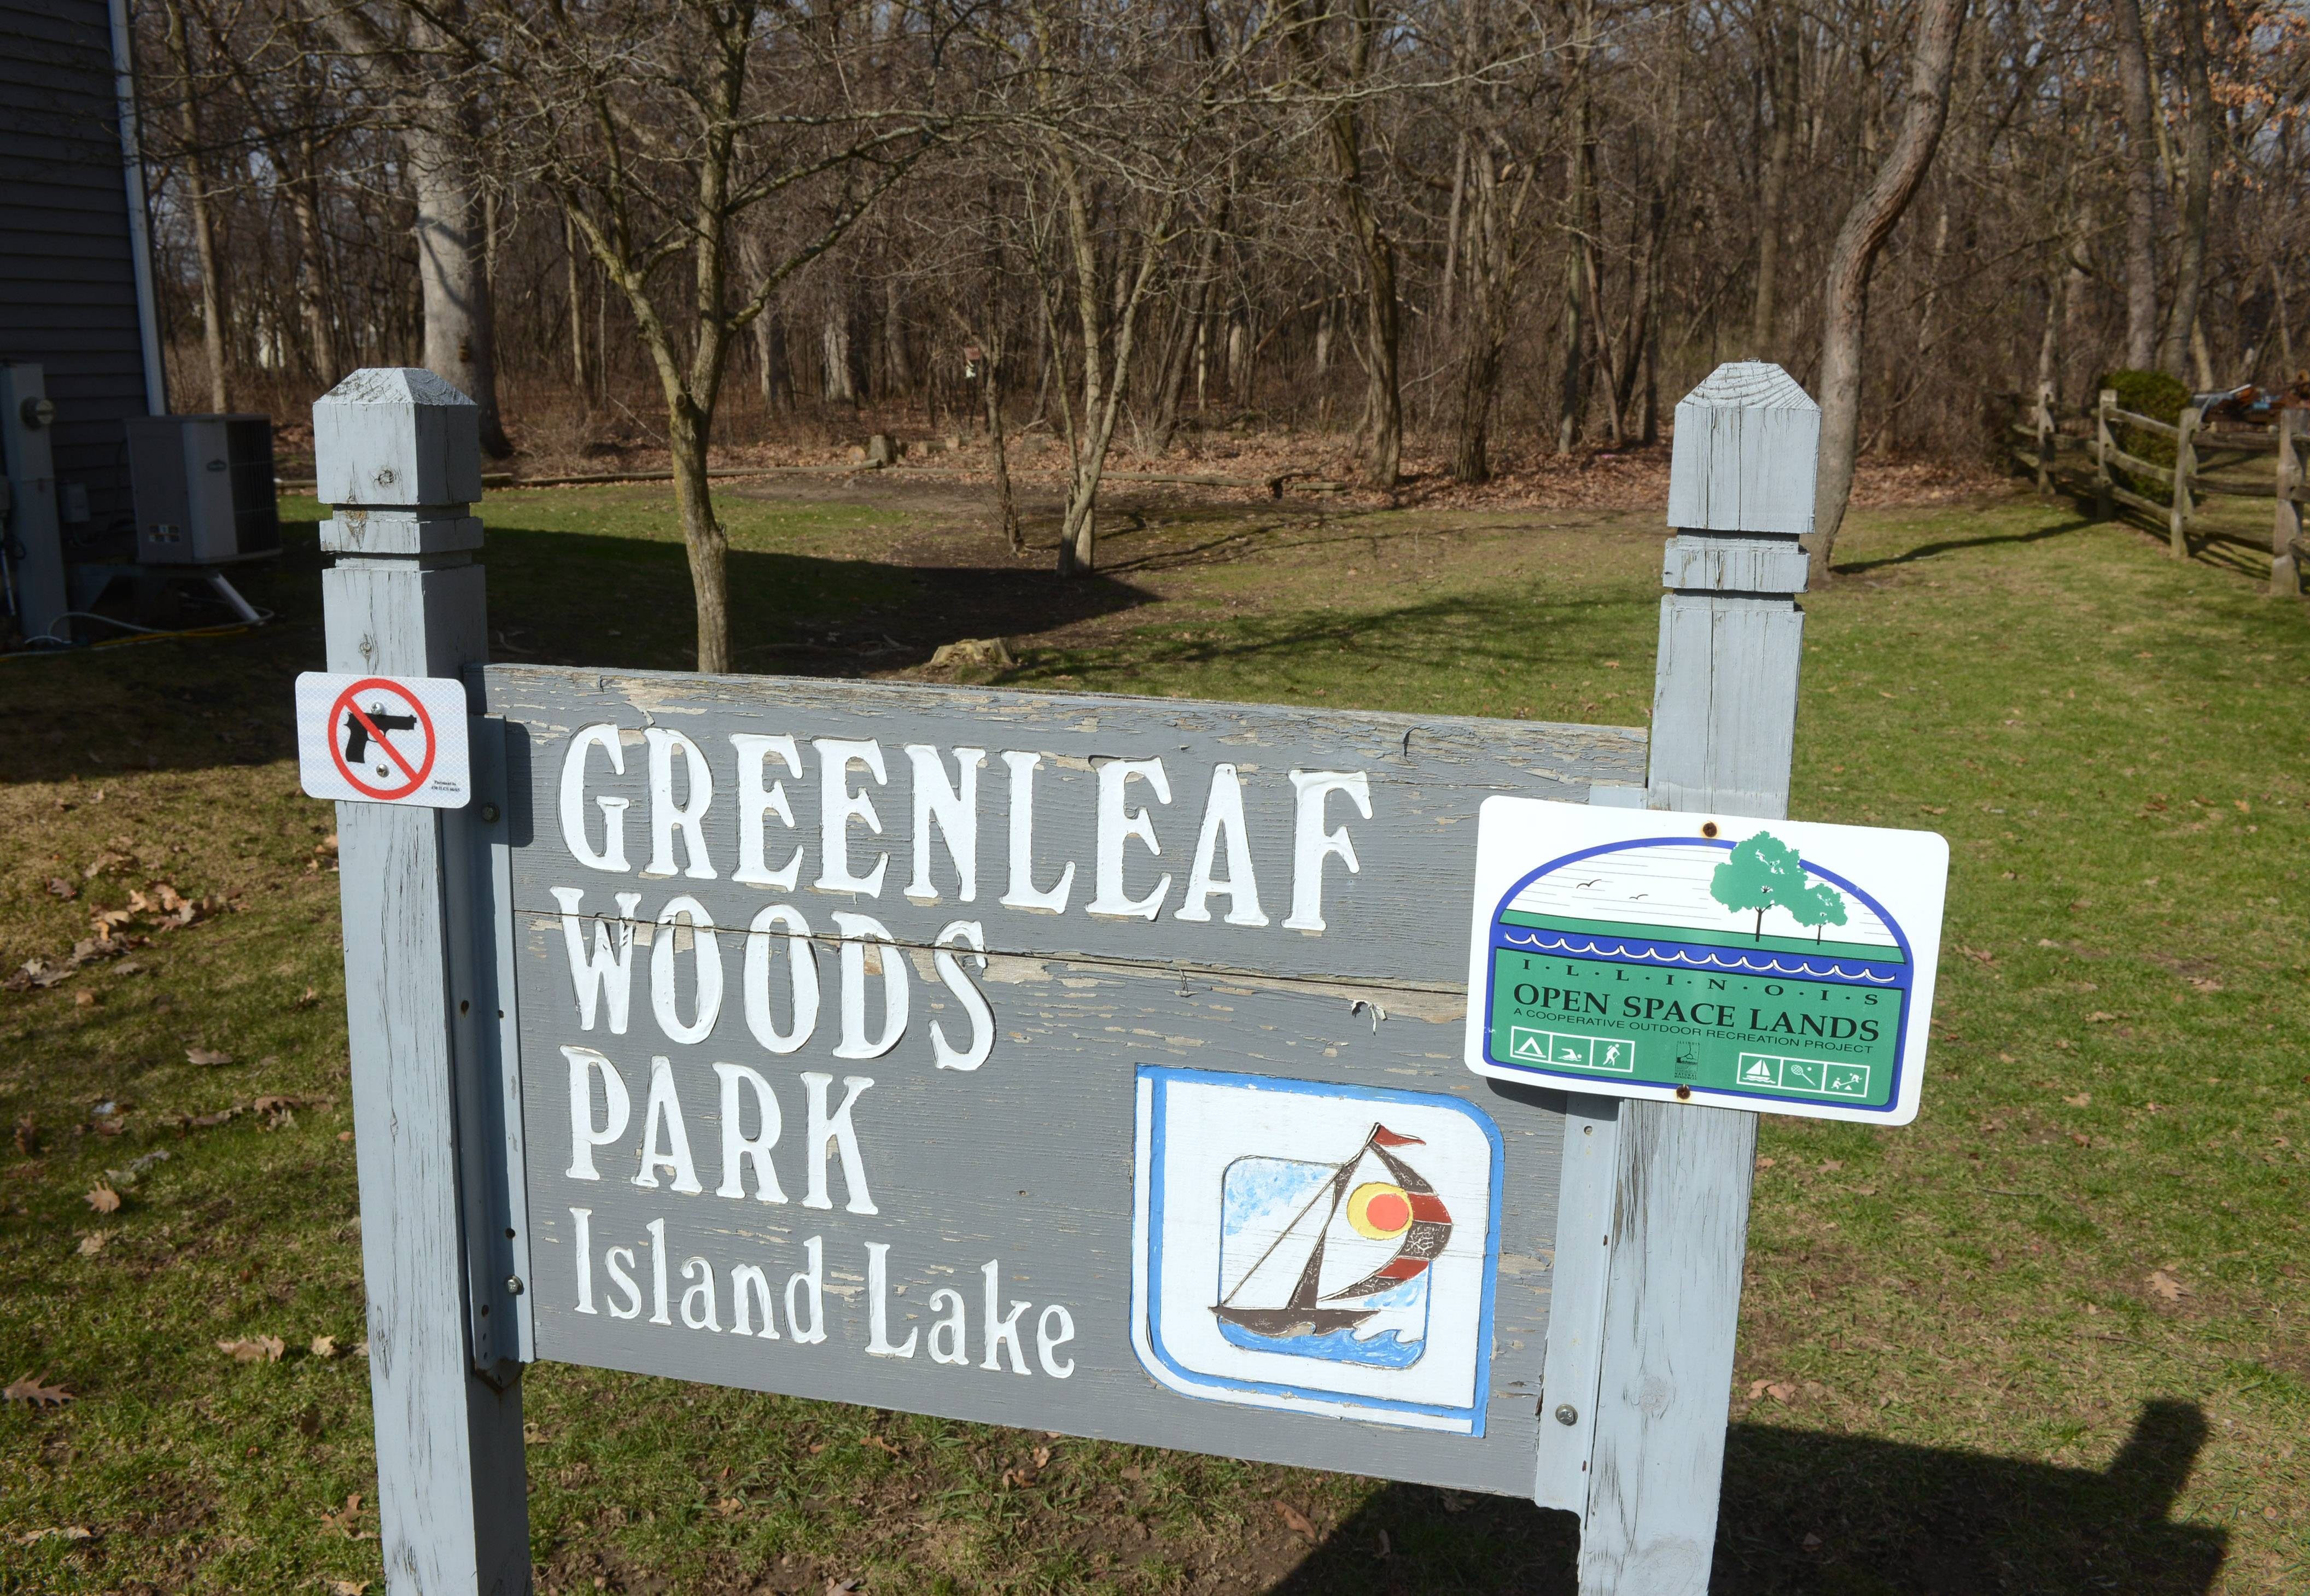 Greenleaf Woods Park in Island Lake.